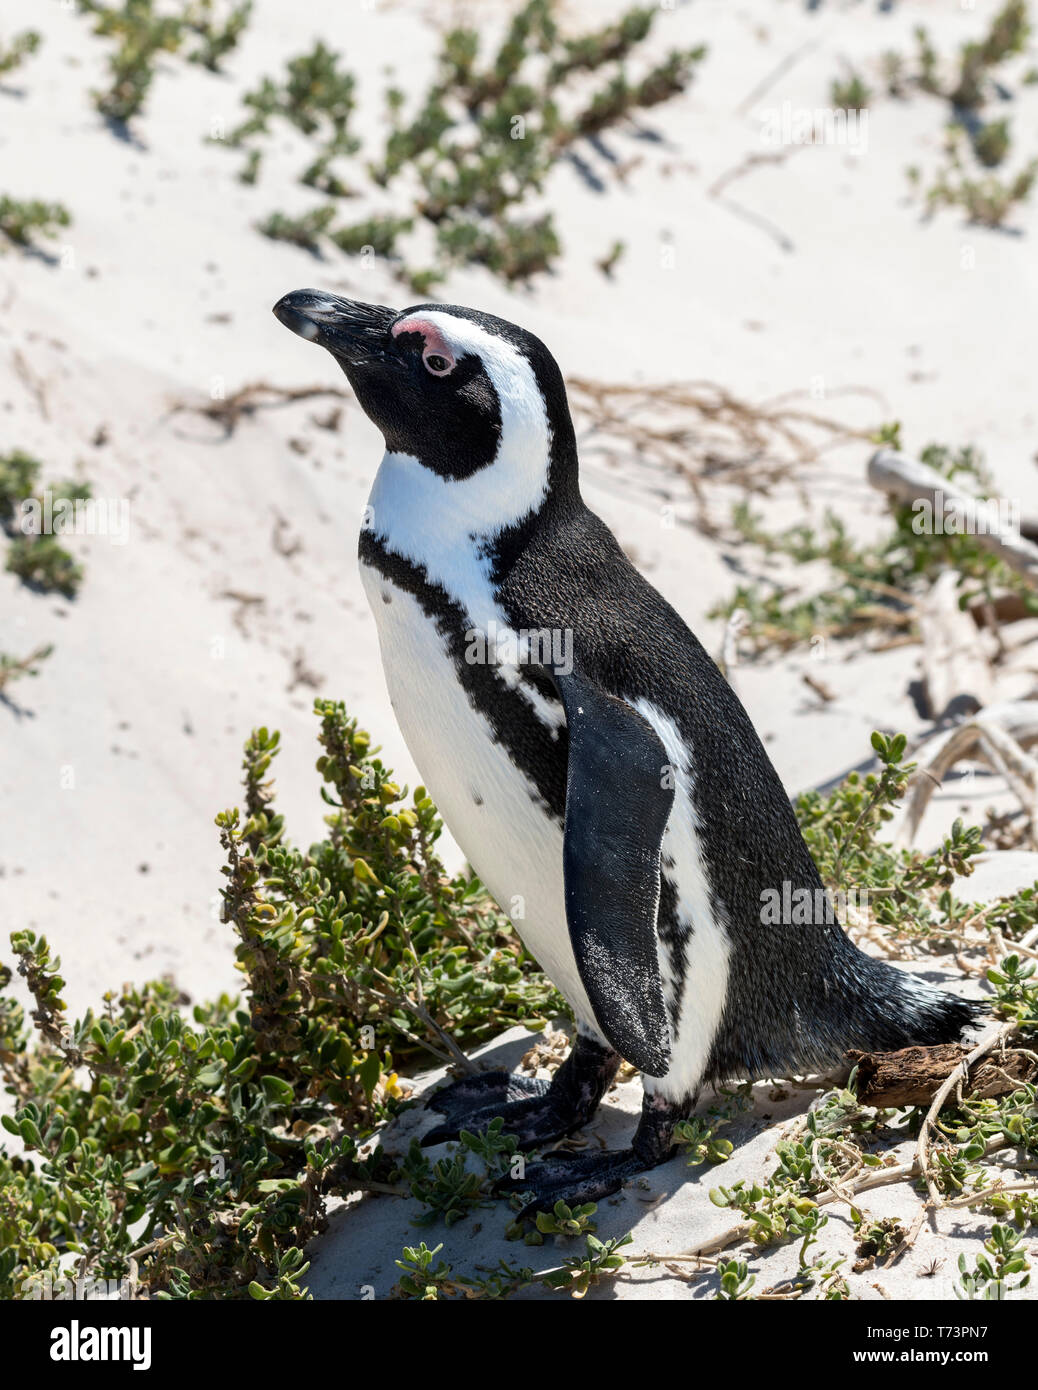 African Penguin (Spheniscus demersus), also known as Jackass Penguins or Black-footed Penguins, Boulders Beach, Simon's Town, Cape Town, South Africa. Stock Photo